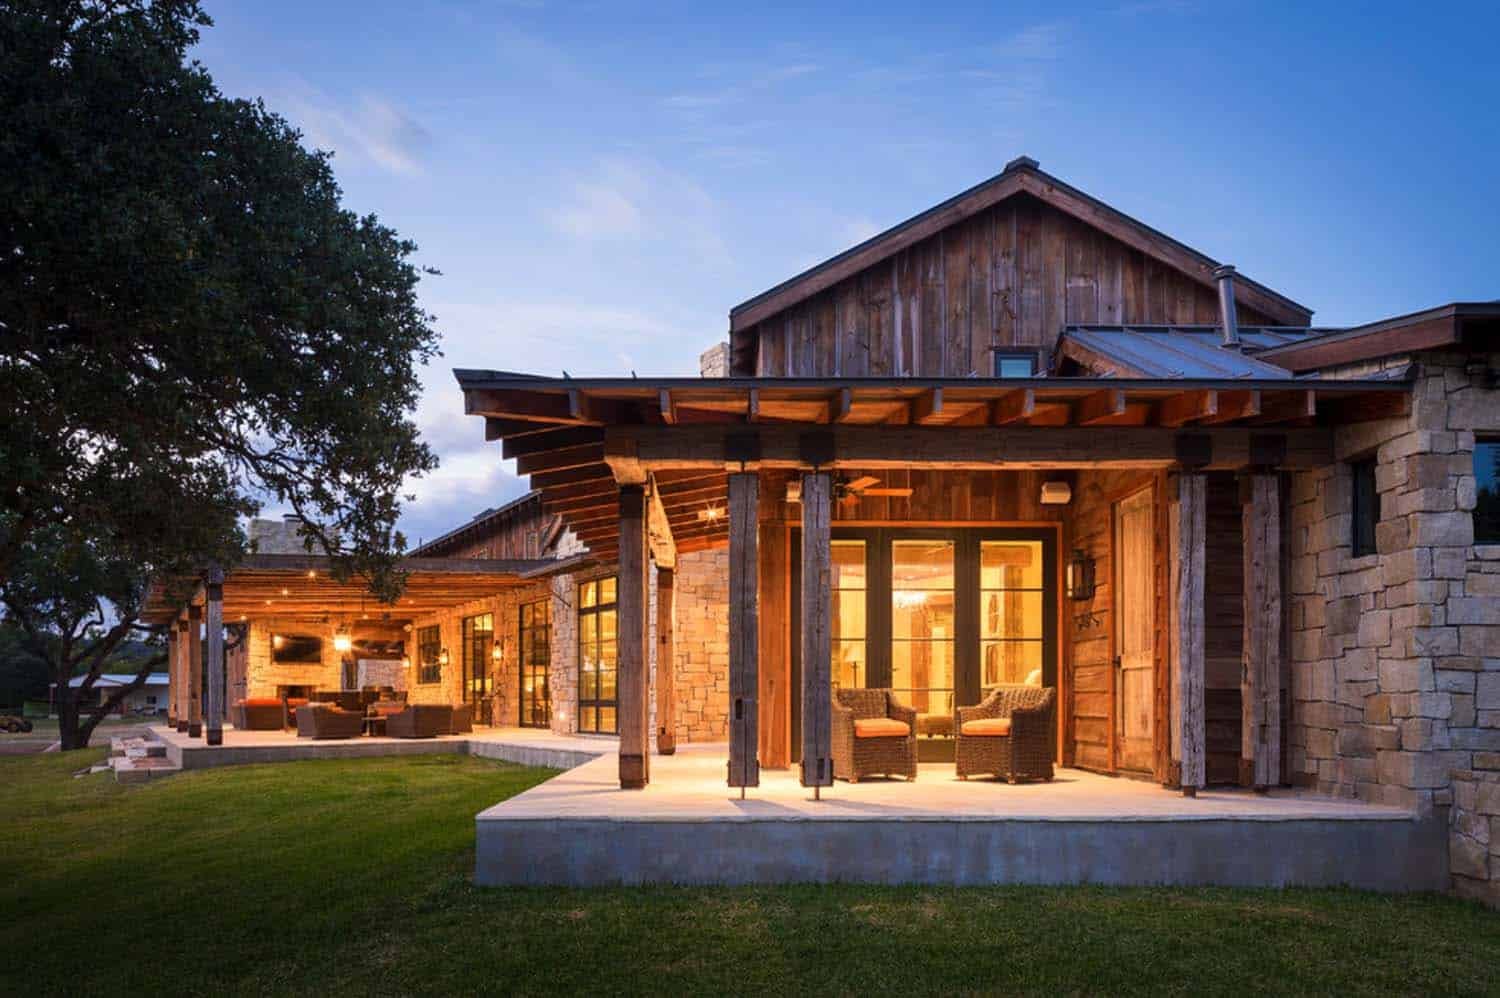 Modern rustic barn style retreat in texas hill country - Modern ranch home interior design ...